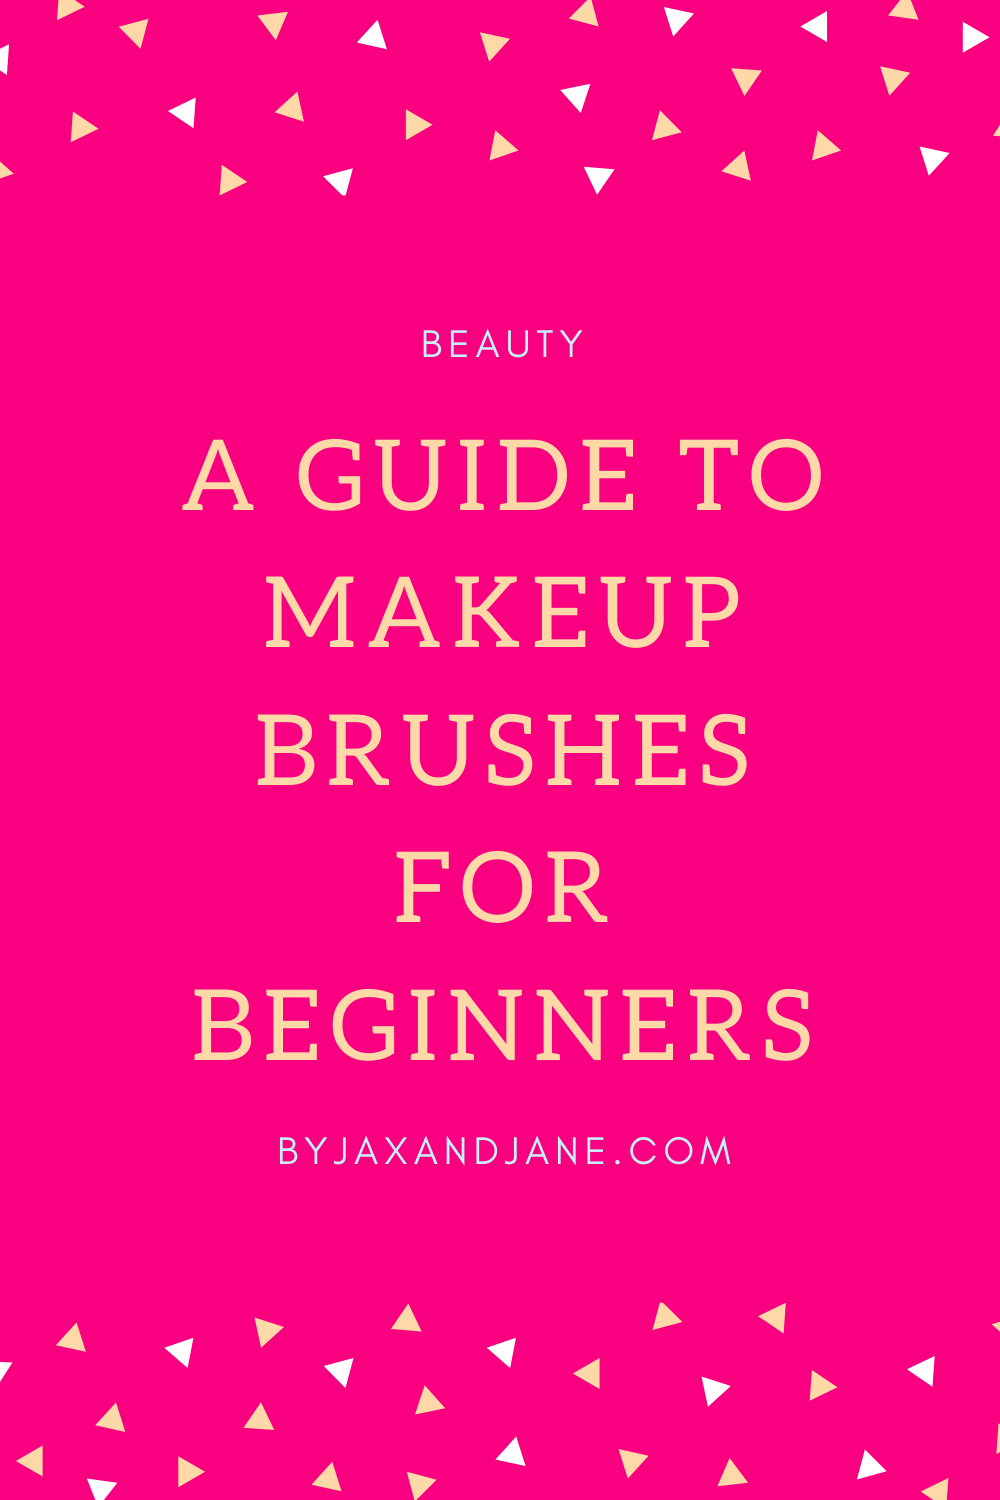 If you are new to makeup you may be overwhelmed by the amount of makeup brushes out there! This is a quick guide to inexpensive makeup brushes that can help get you started at an affordable price. #Makeup #Beauty #Brush #Brushes #MakeupBrushes #Morphe #RealTechniques #Sponge #MakeupSponge #BeginnerMakeup #MakeupGuide #BeginnerMakeupBrushes #AffordableMakeup #AffordableMakeupBrushes via @ byjaxandjane.com